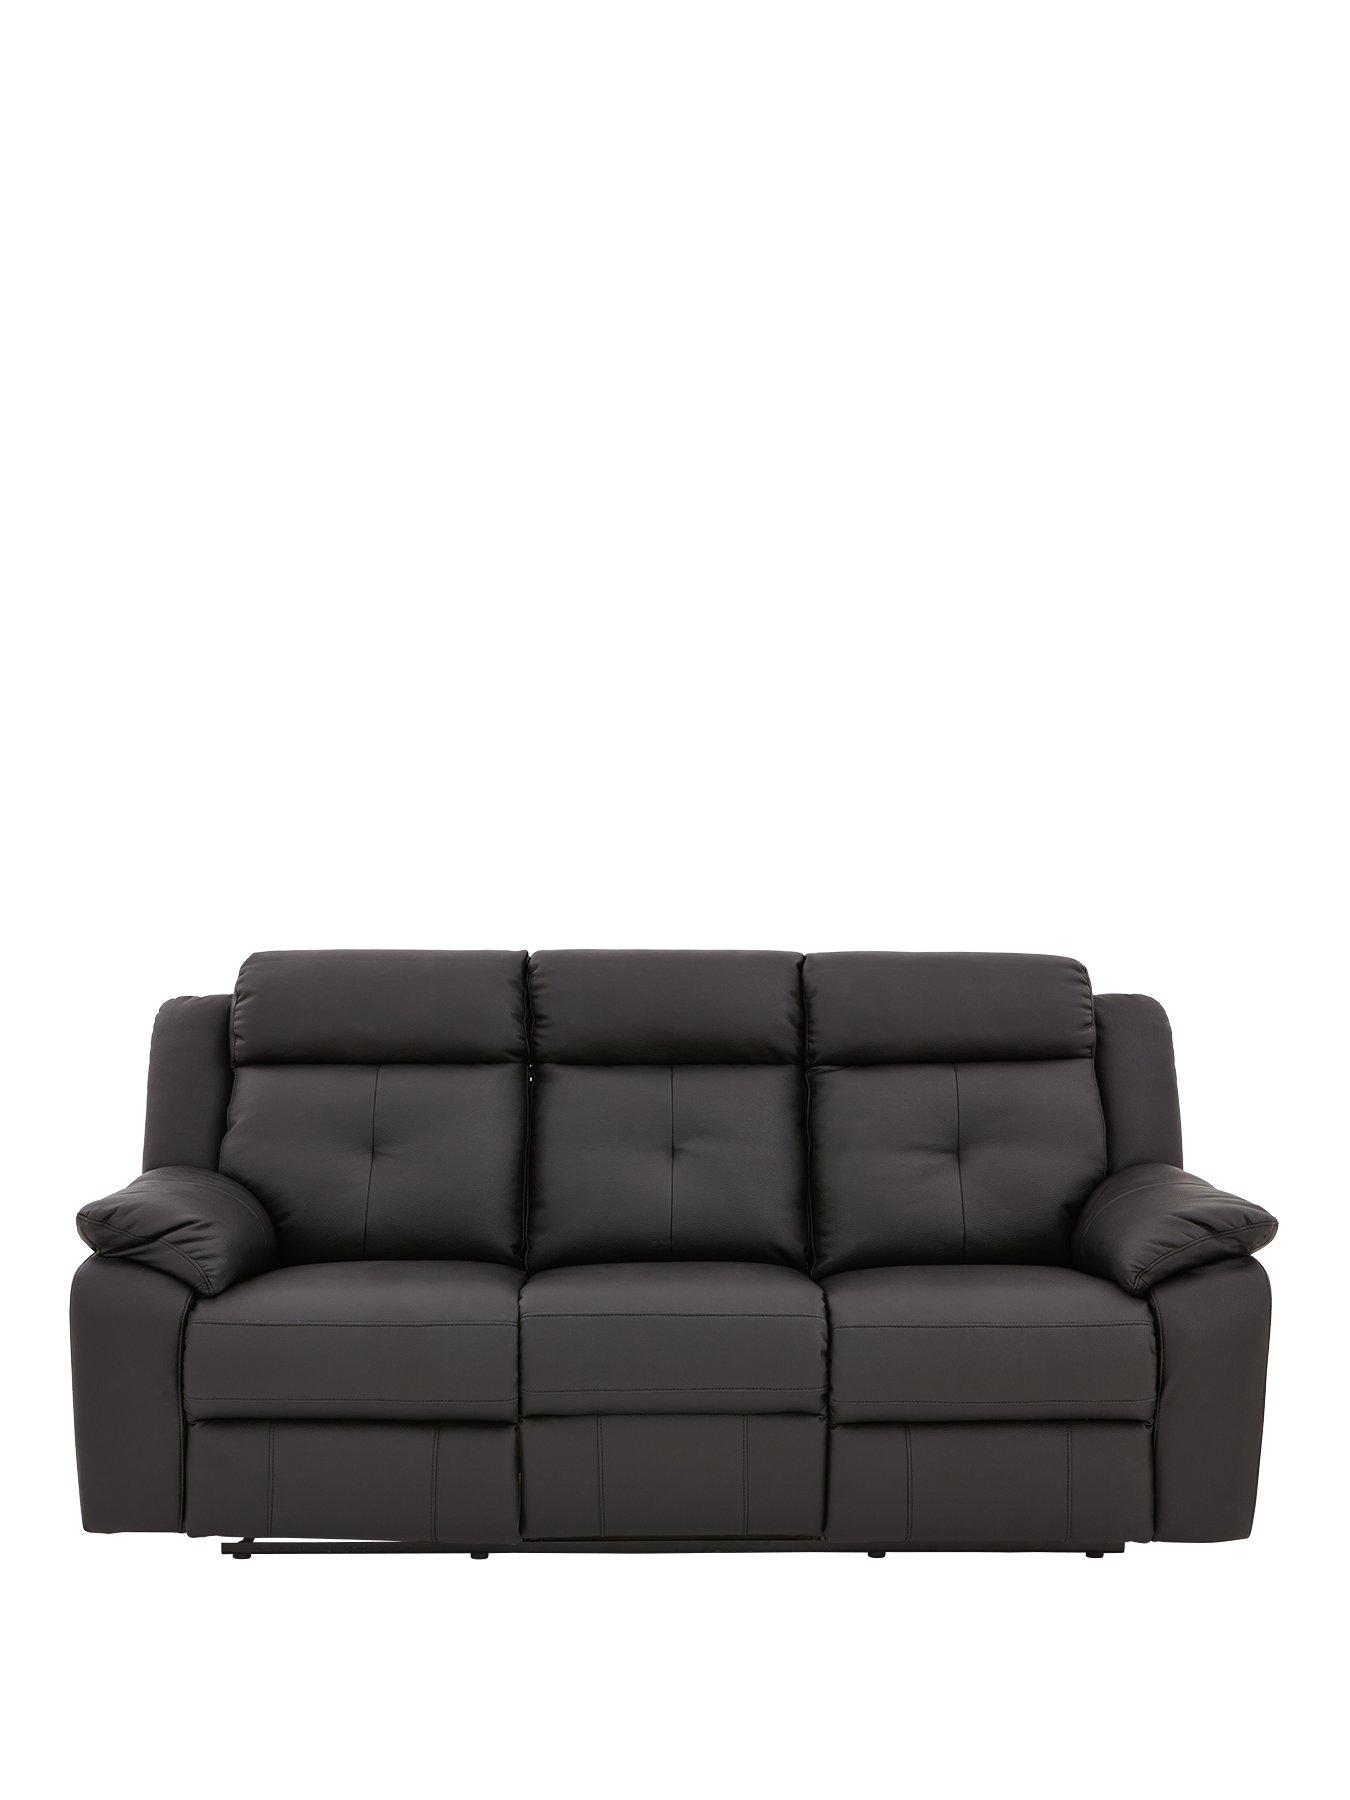 3-Seater Denzel Luxury Recliner Sofa (Faux Leather)